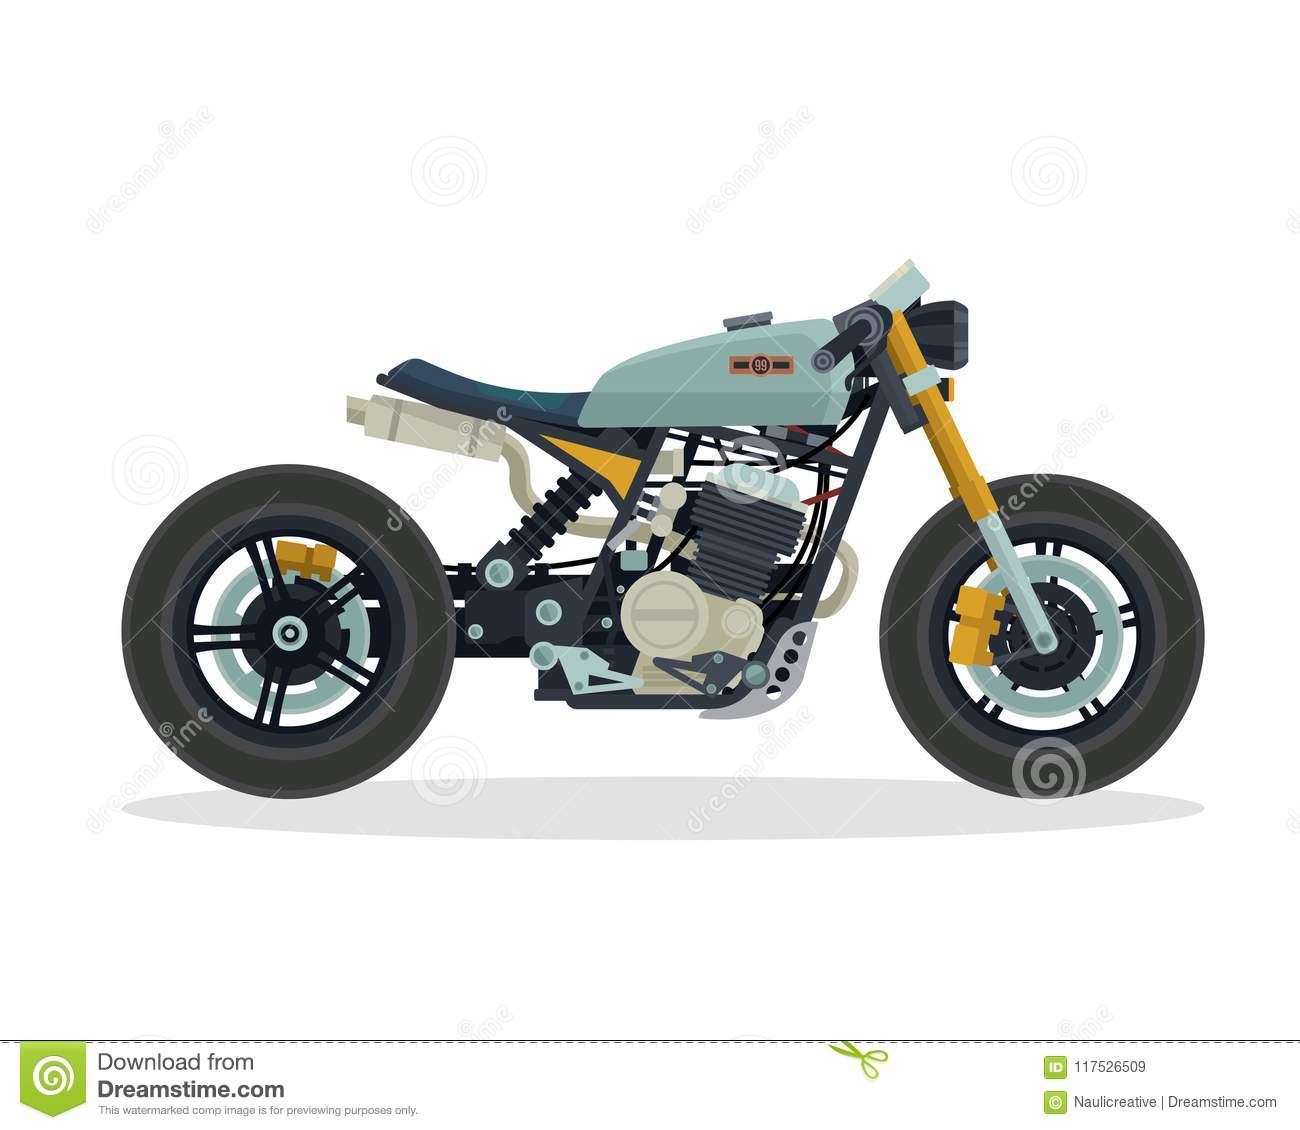 Vintage Classic Cafe Racer Motorcycle Illustration Stock Vector Illustration Of Isolated Brotherhood 117526509